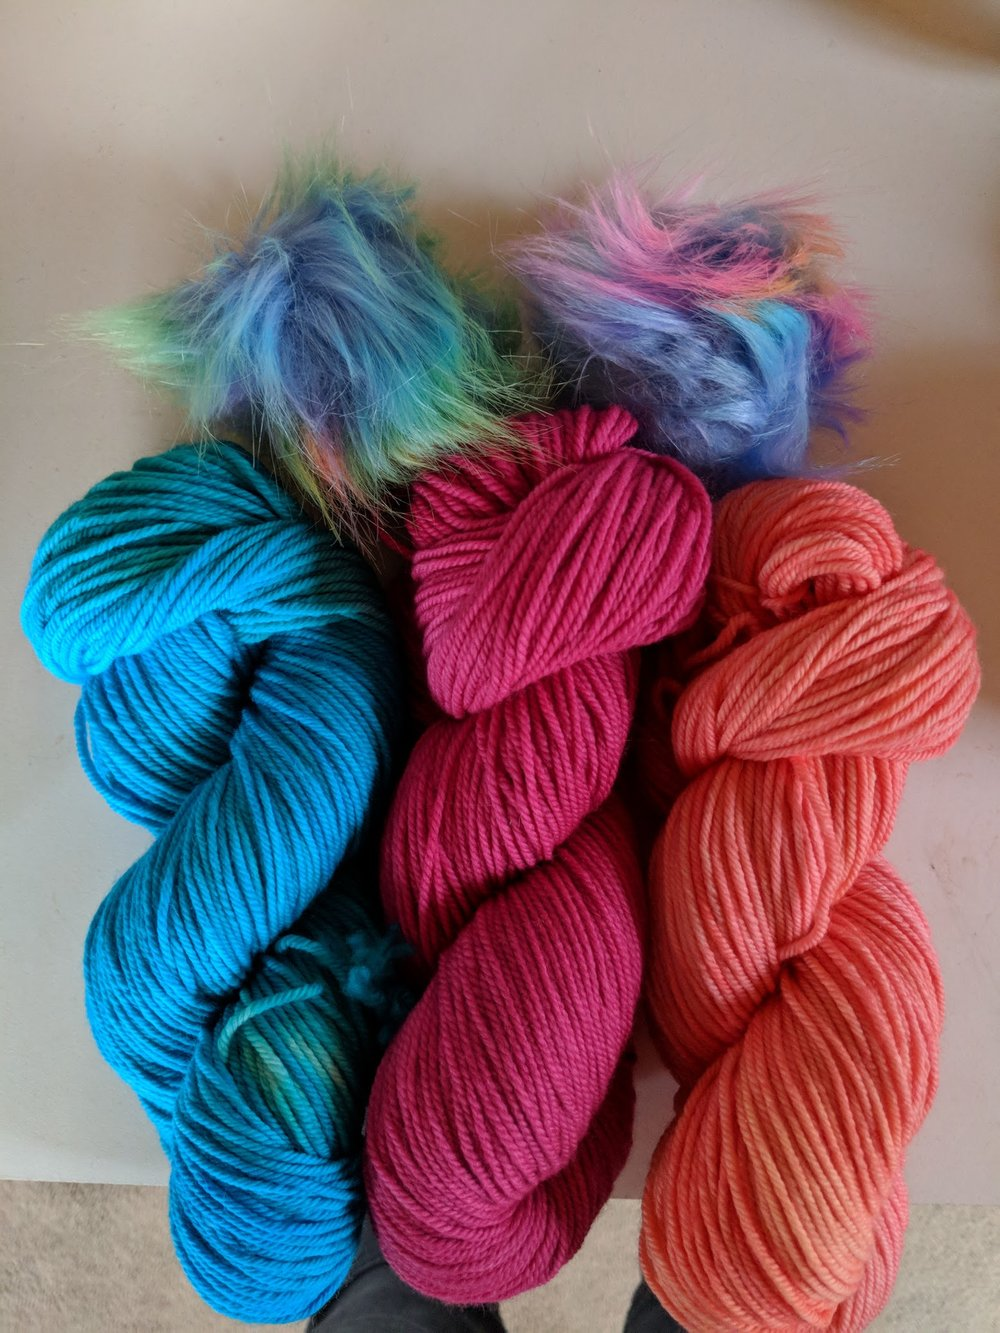 Putting together yarn/pompom options for a customer. Hat plans are in the works!